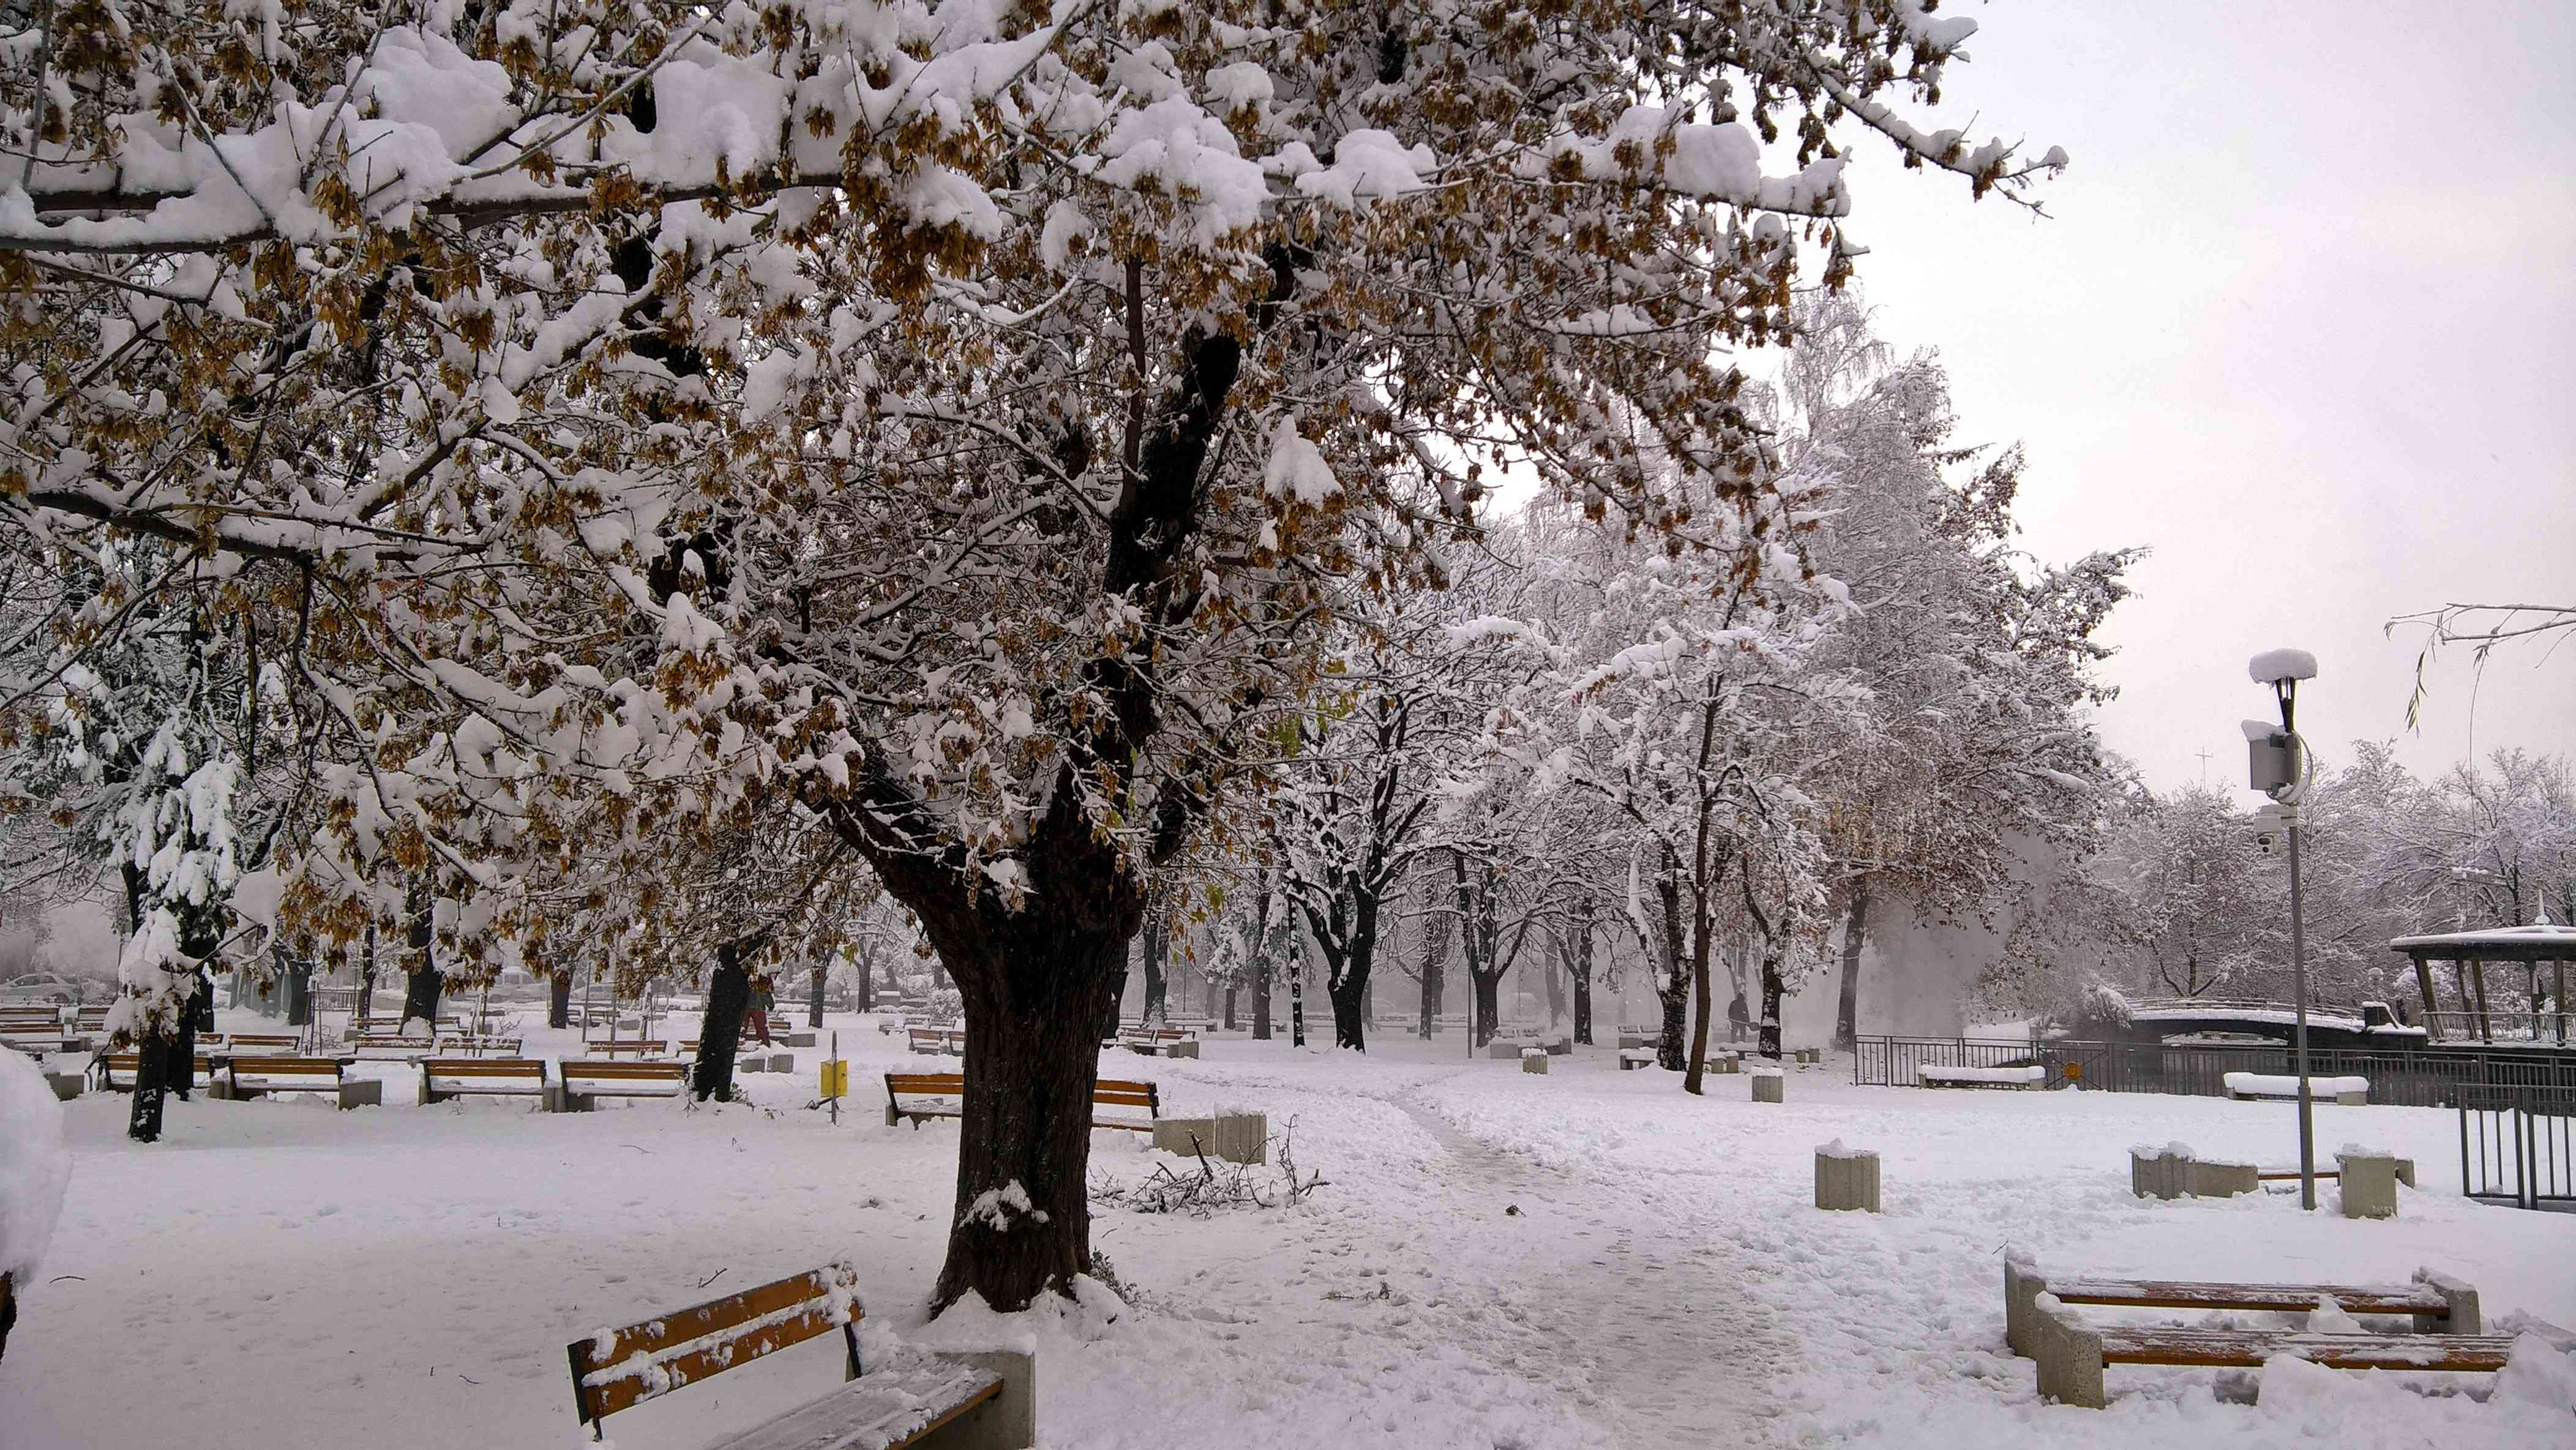 A winter scene is a park.